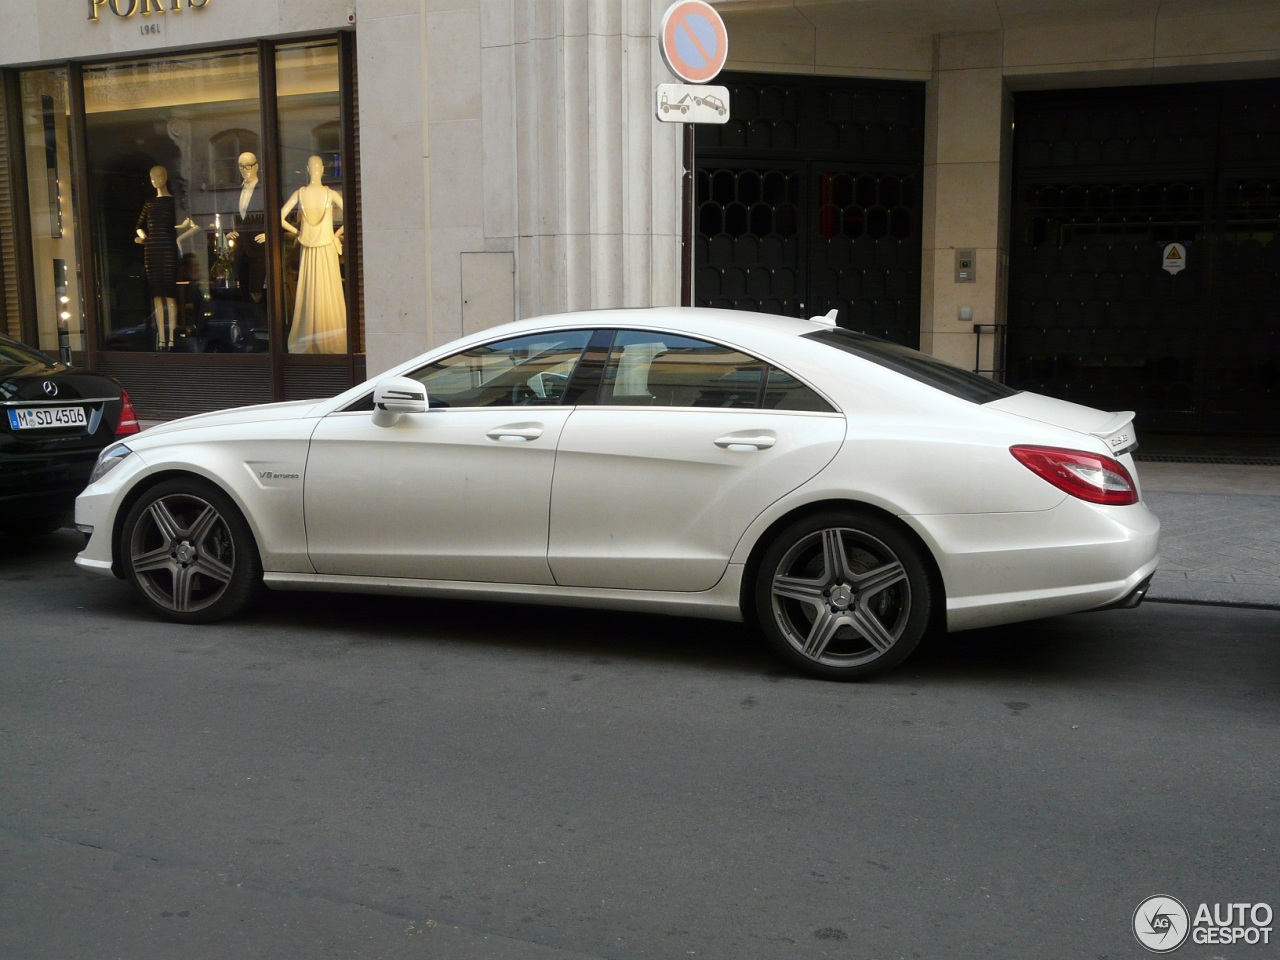 Mercedes benz cls 63 amg c218 29 march 2013 autogespot for 2013 mercedes benz cls 63 amg